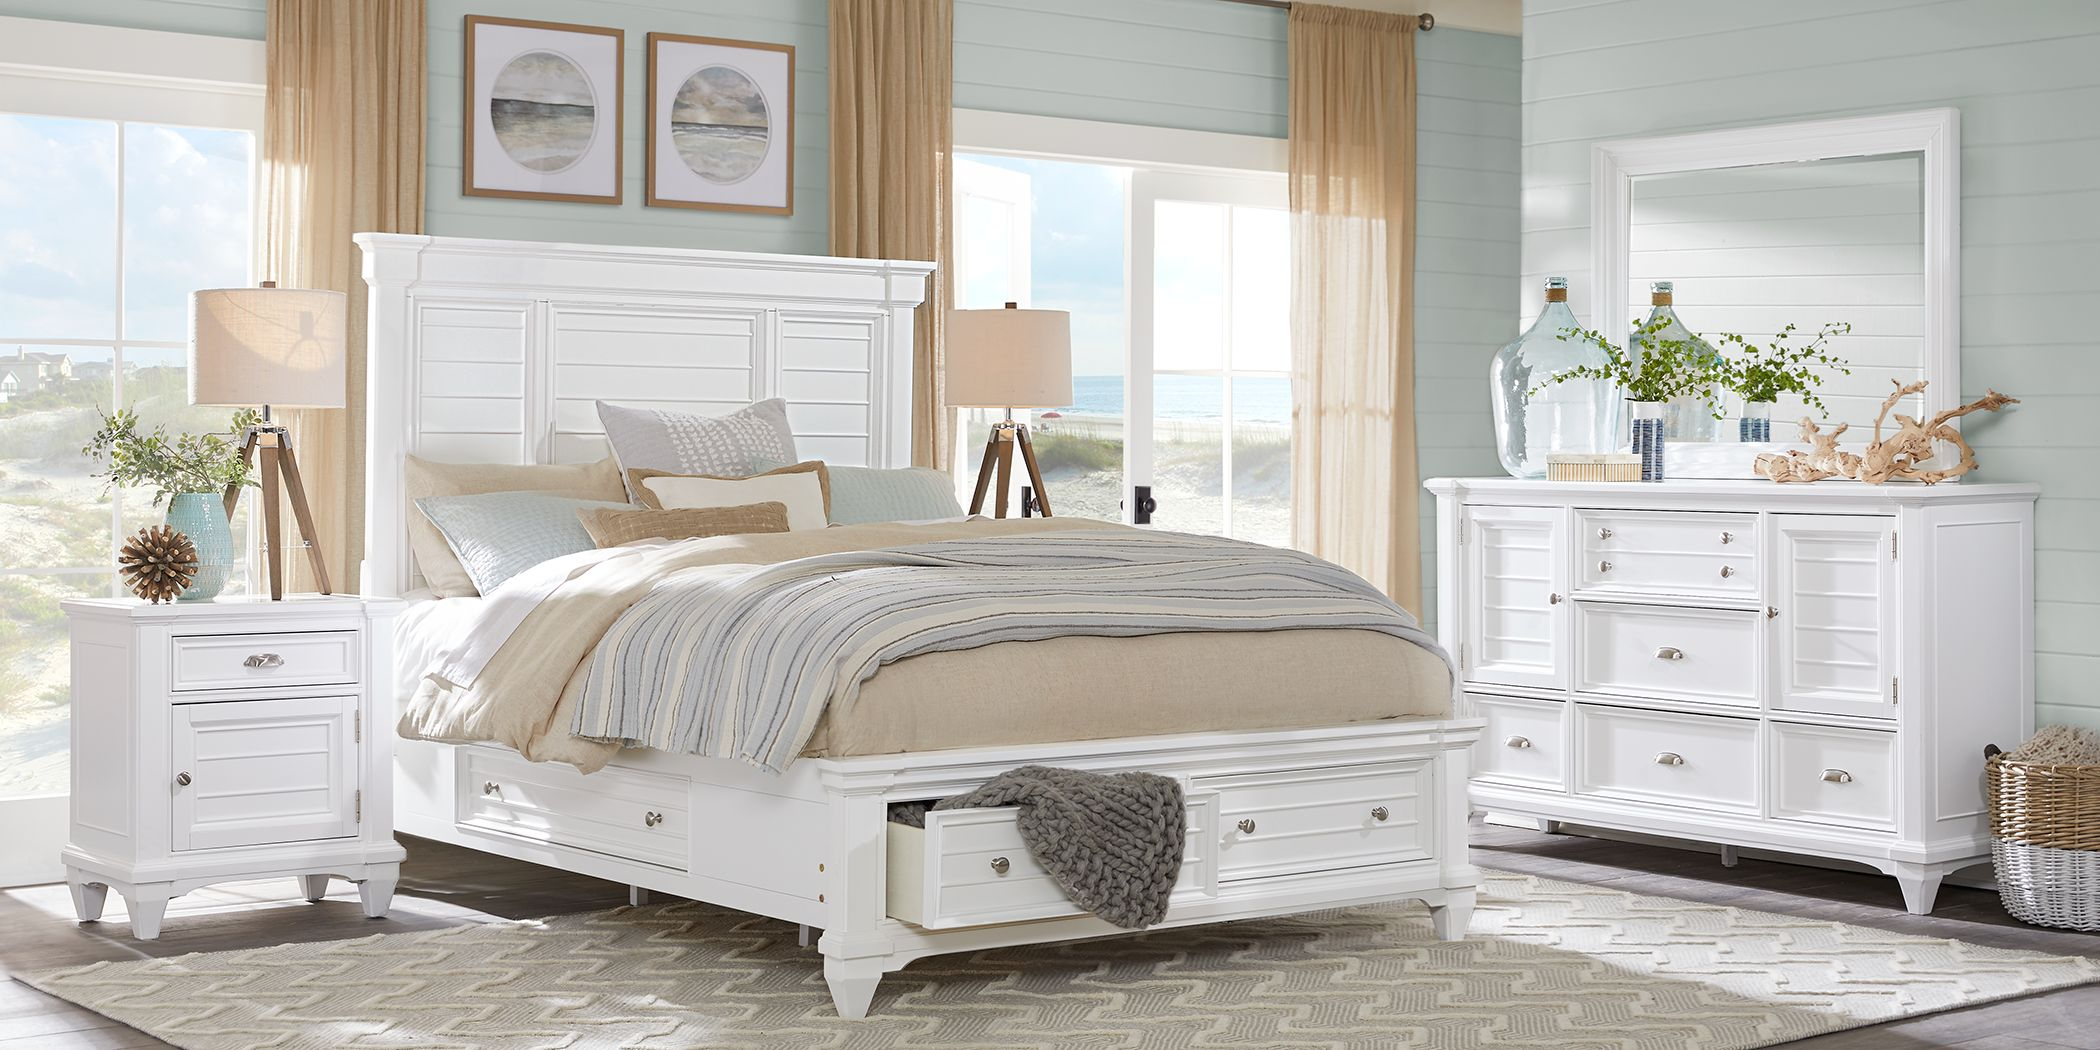 White King Sized Bedroom Sets